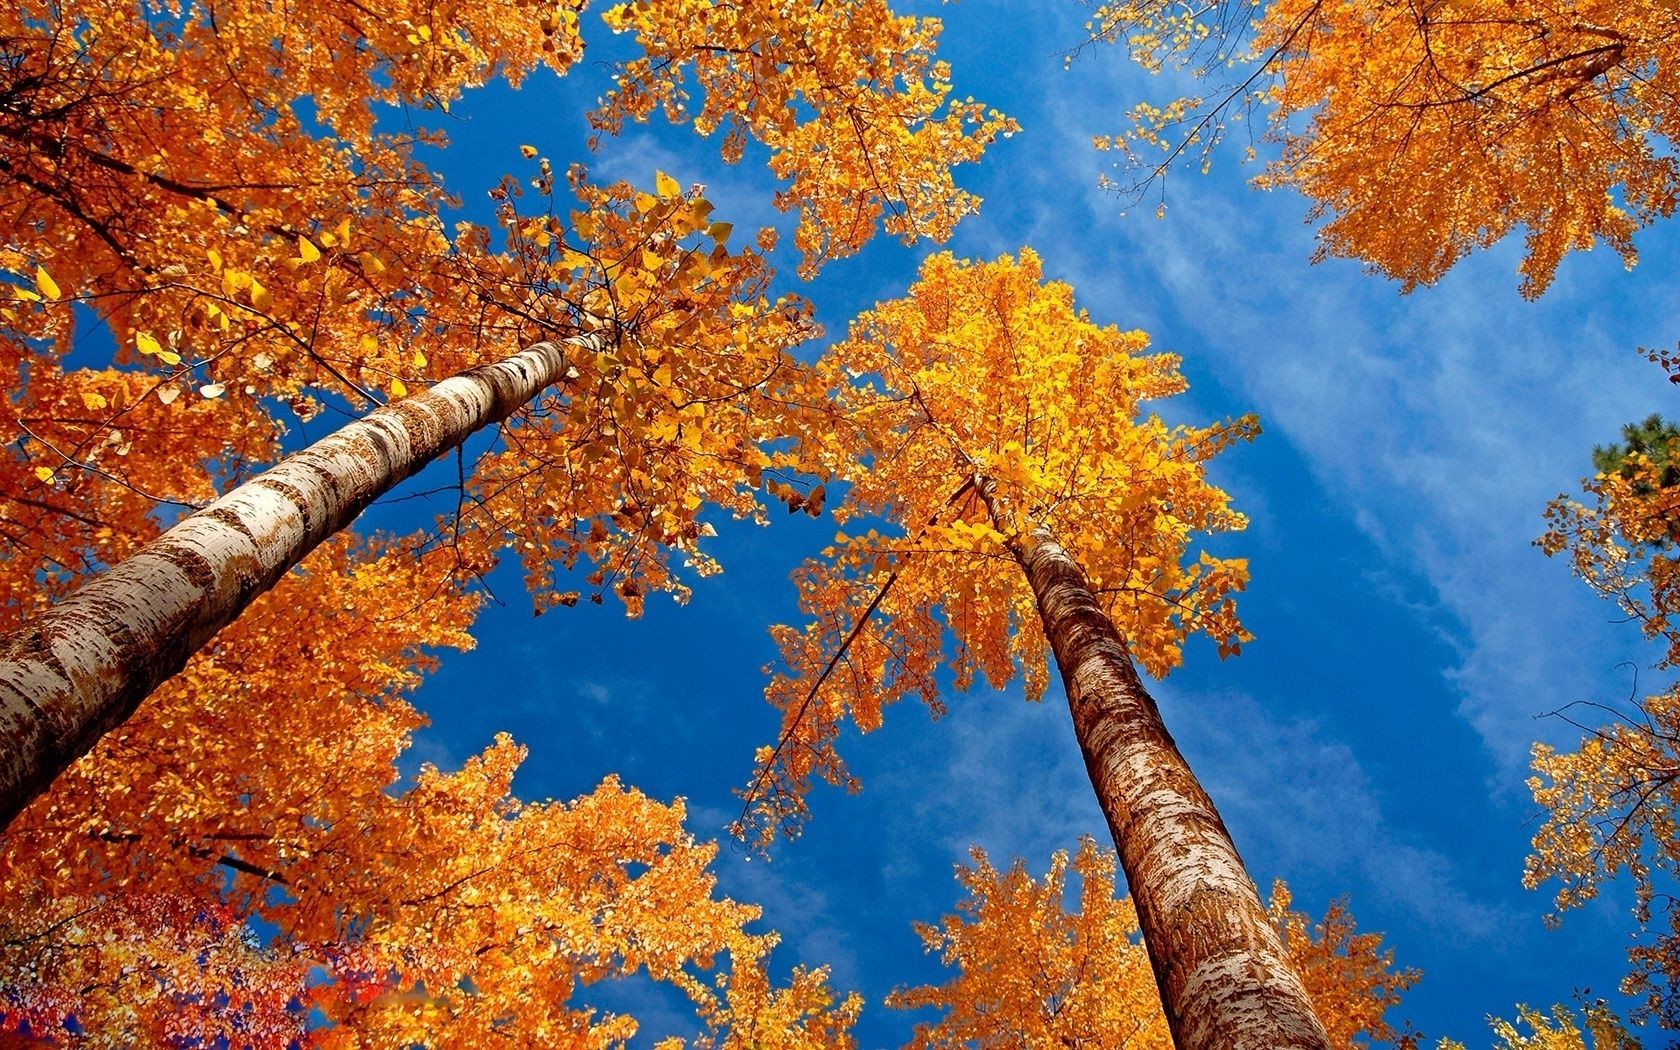 the yellowed crown of birch trees on blue sky background